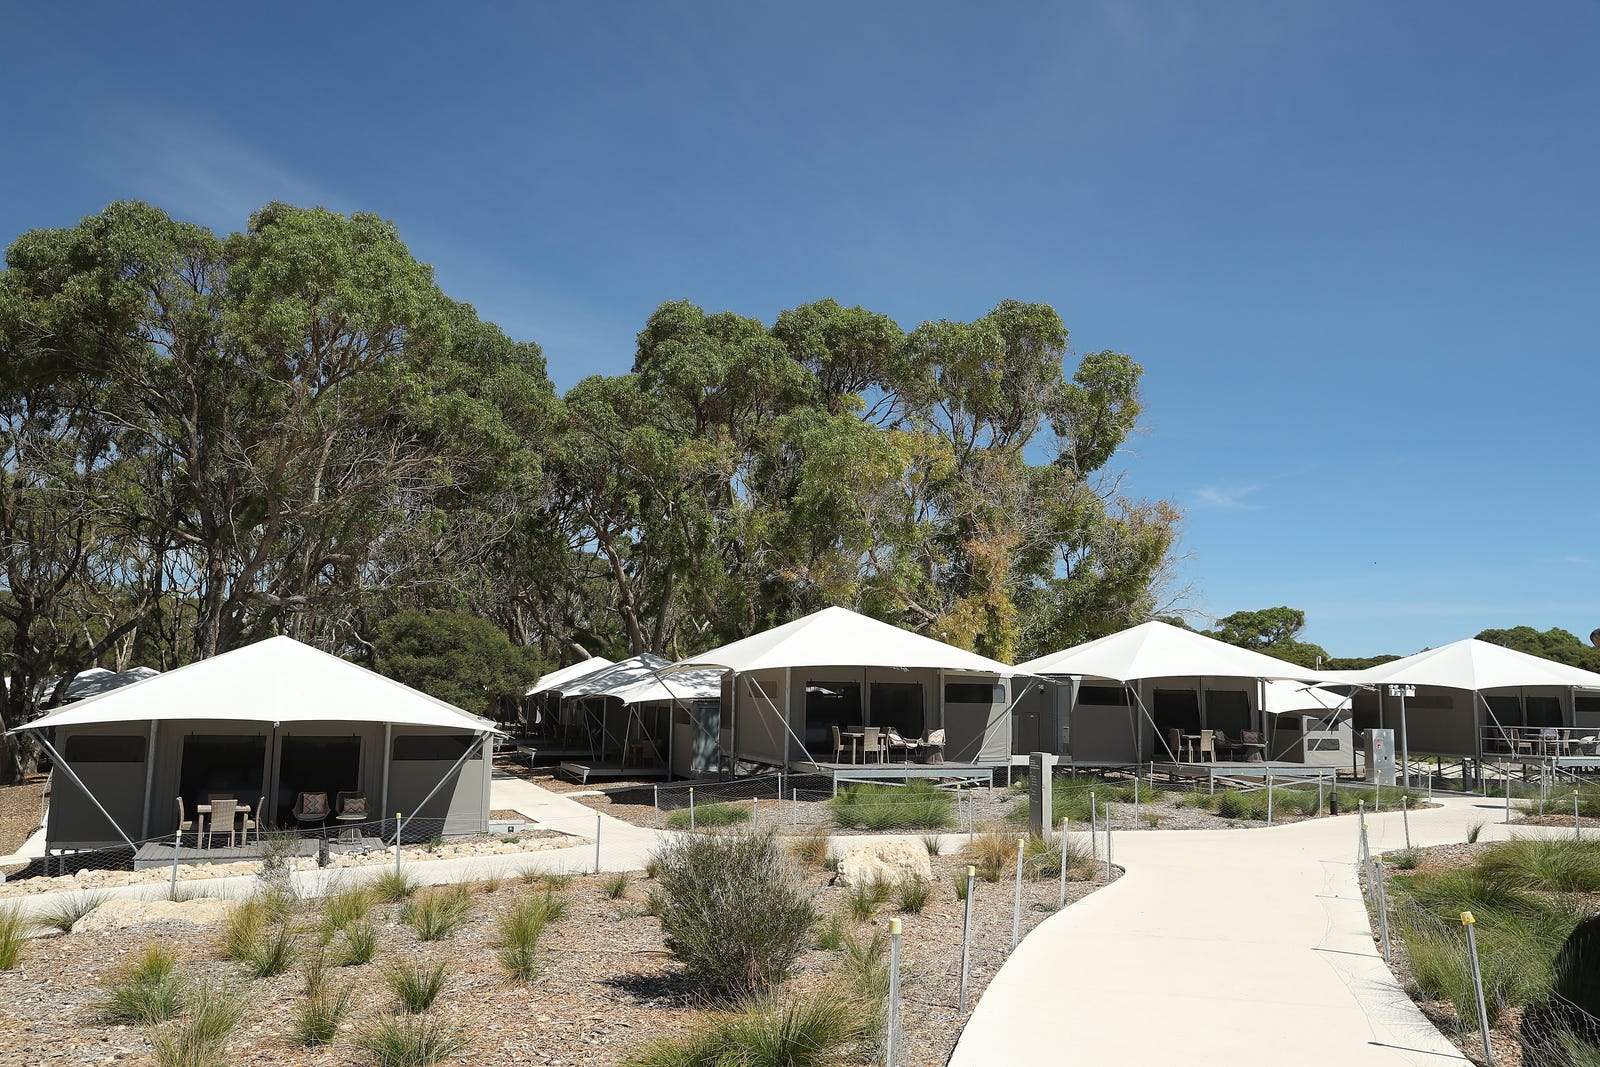 Glamping accommodation is seen near Pinky Beach on March 23, 2020 in Rottnest Island, Australia.